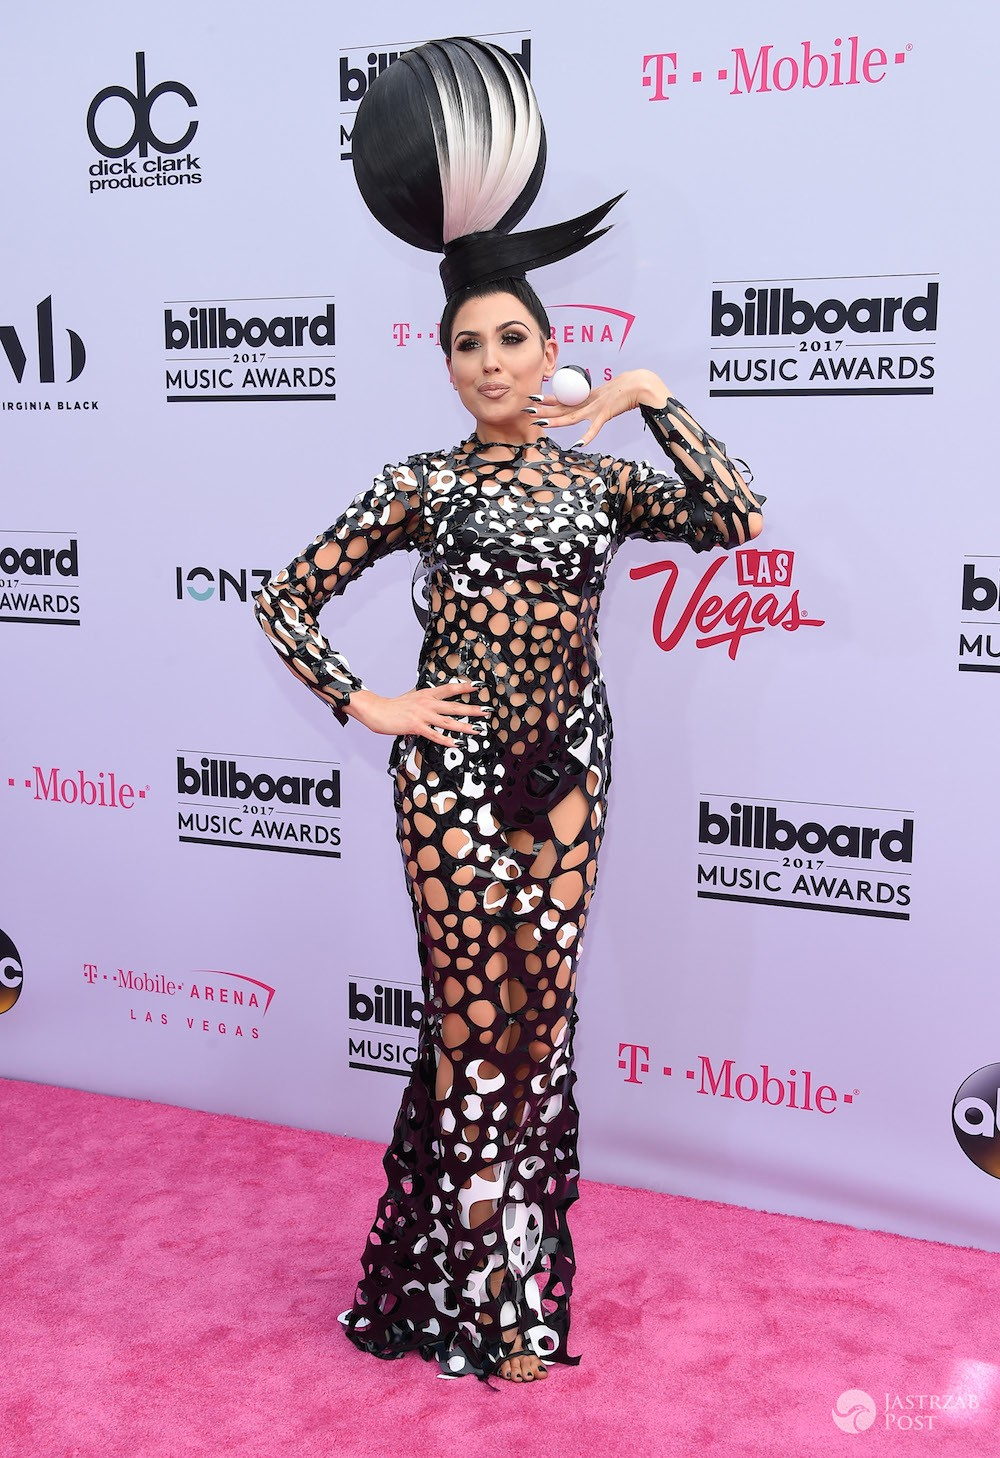 Z LaLa - Billboard Music Awards 2017